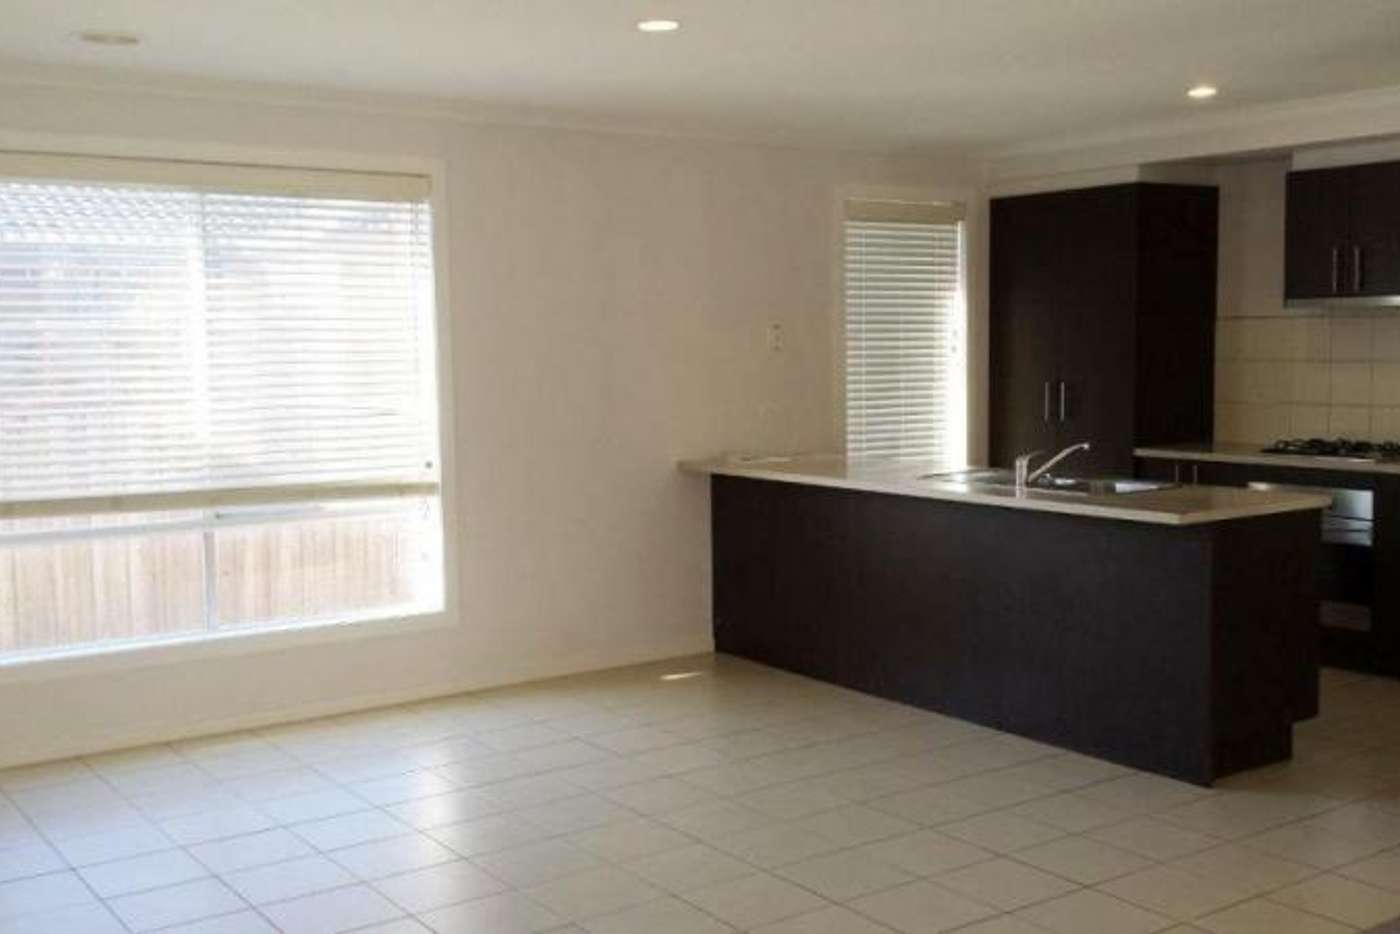 Seventh view of Homely house listing, 102 Rose Grange Boulevard, Tarneit VIC 3029